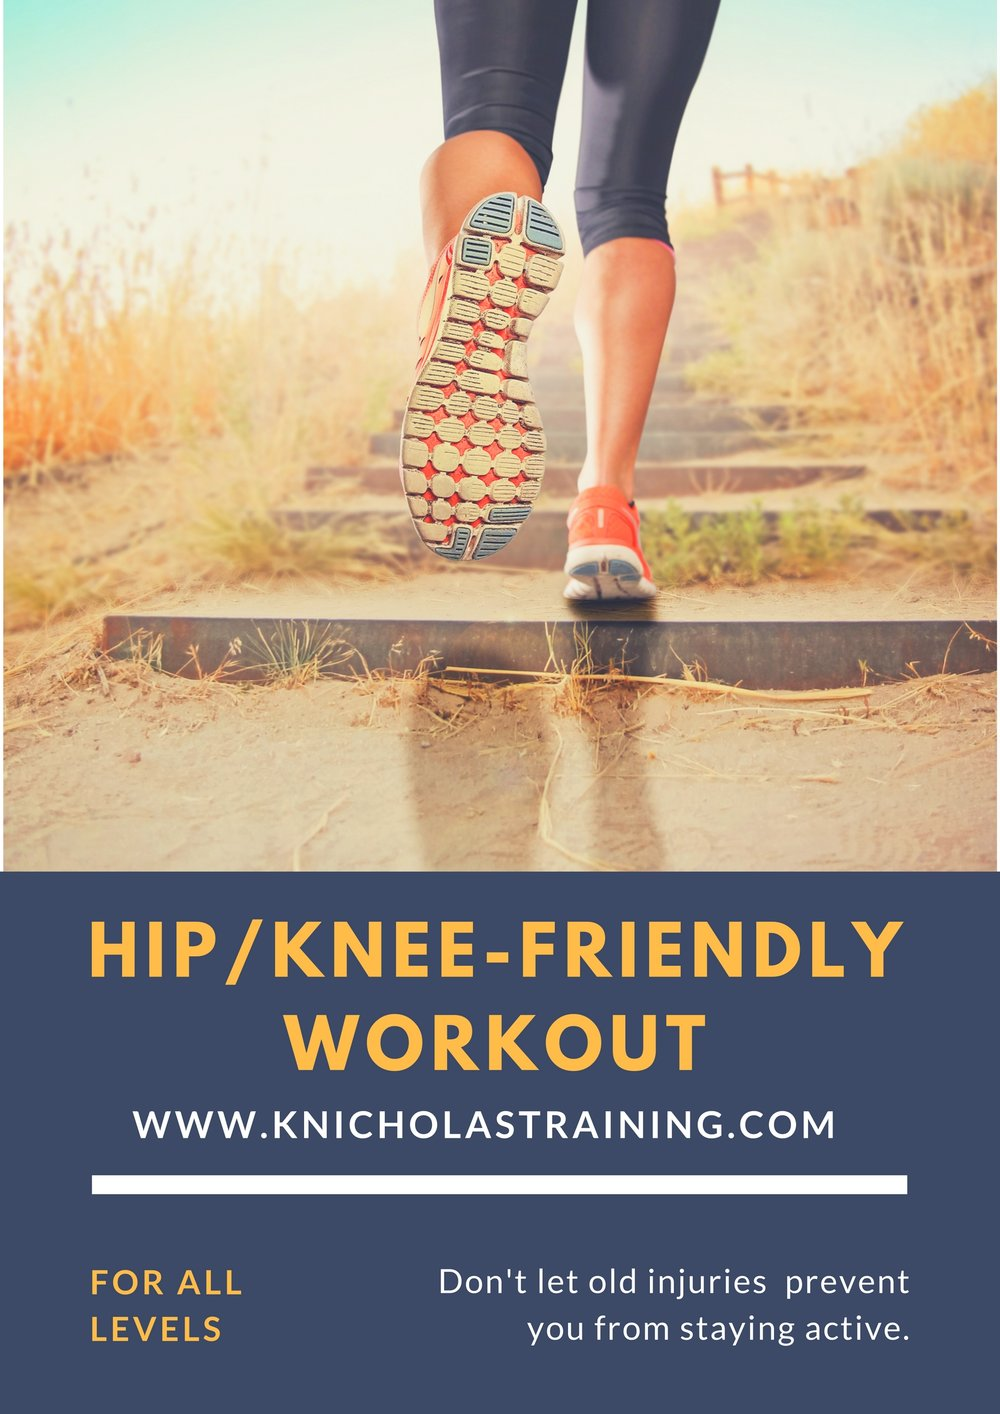 hip and knee friendly workout.jpg